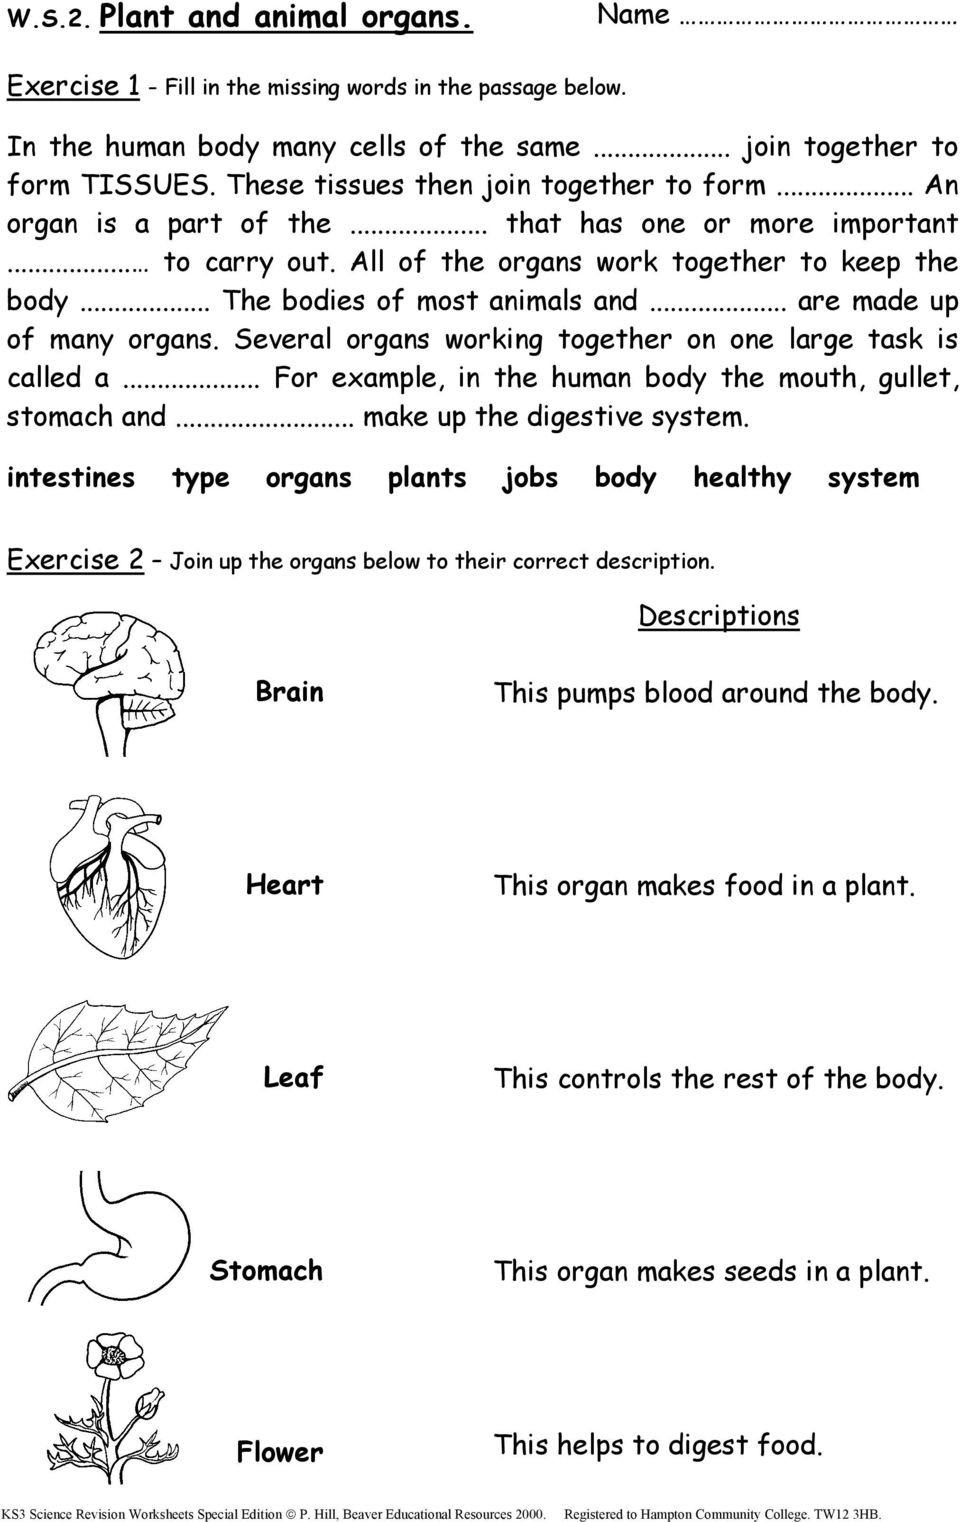 Middle School Science Worksheets Pdf Ks3 Science Revision Worksheets Pdf Free Ks2 Special Edition